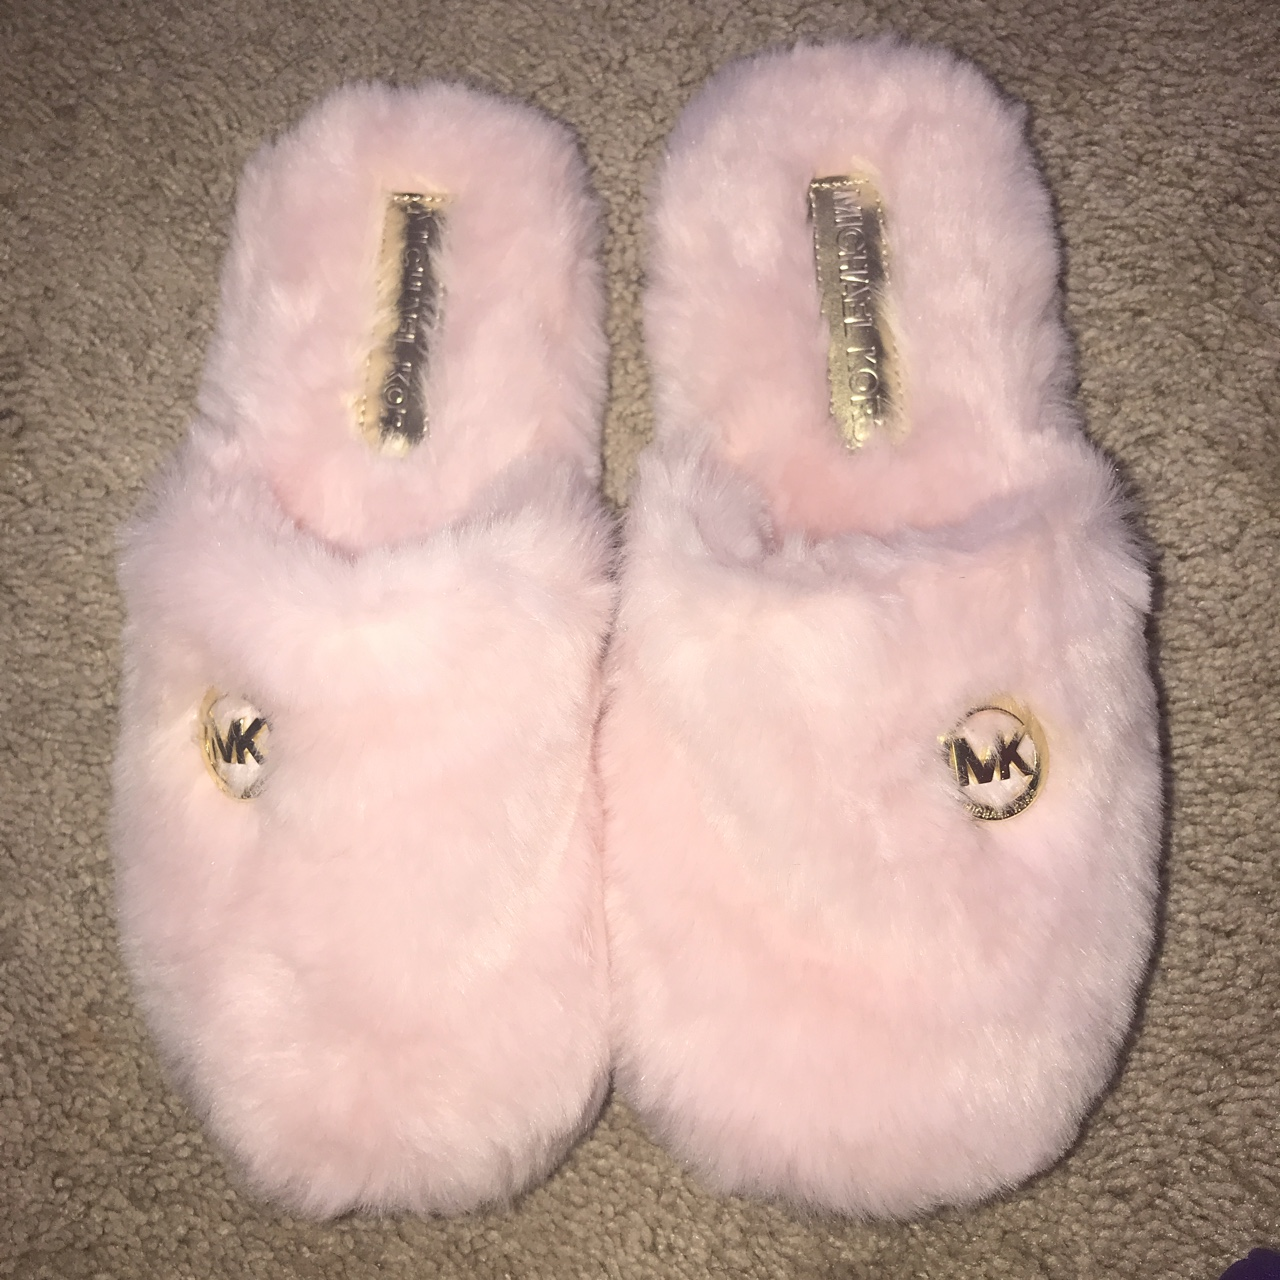 Michael Kors Pink Fuzzy slippers. NEVER